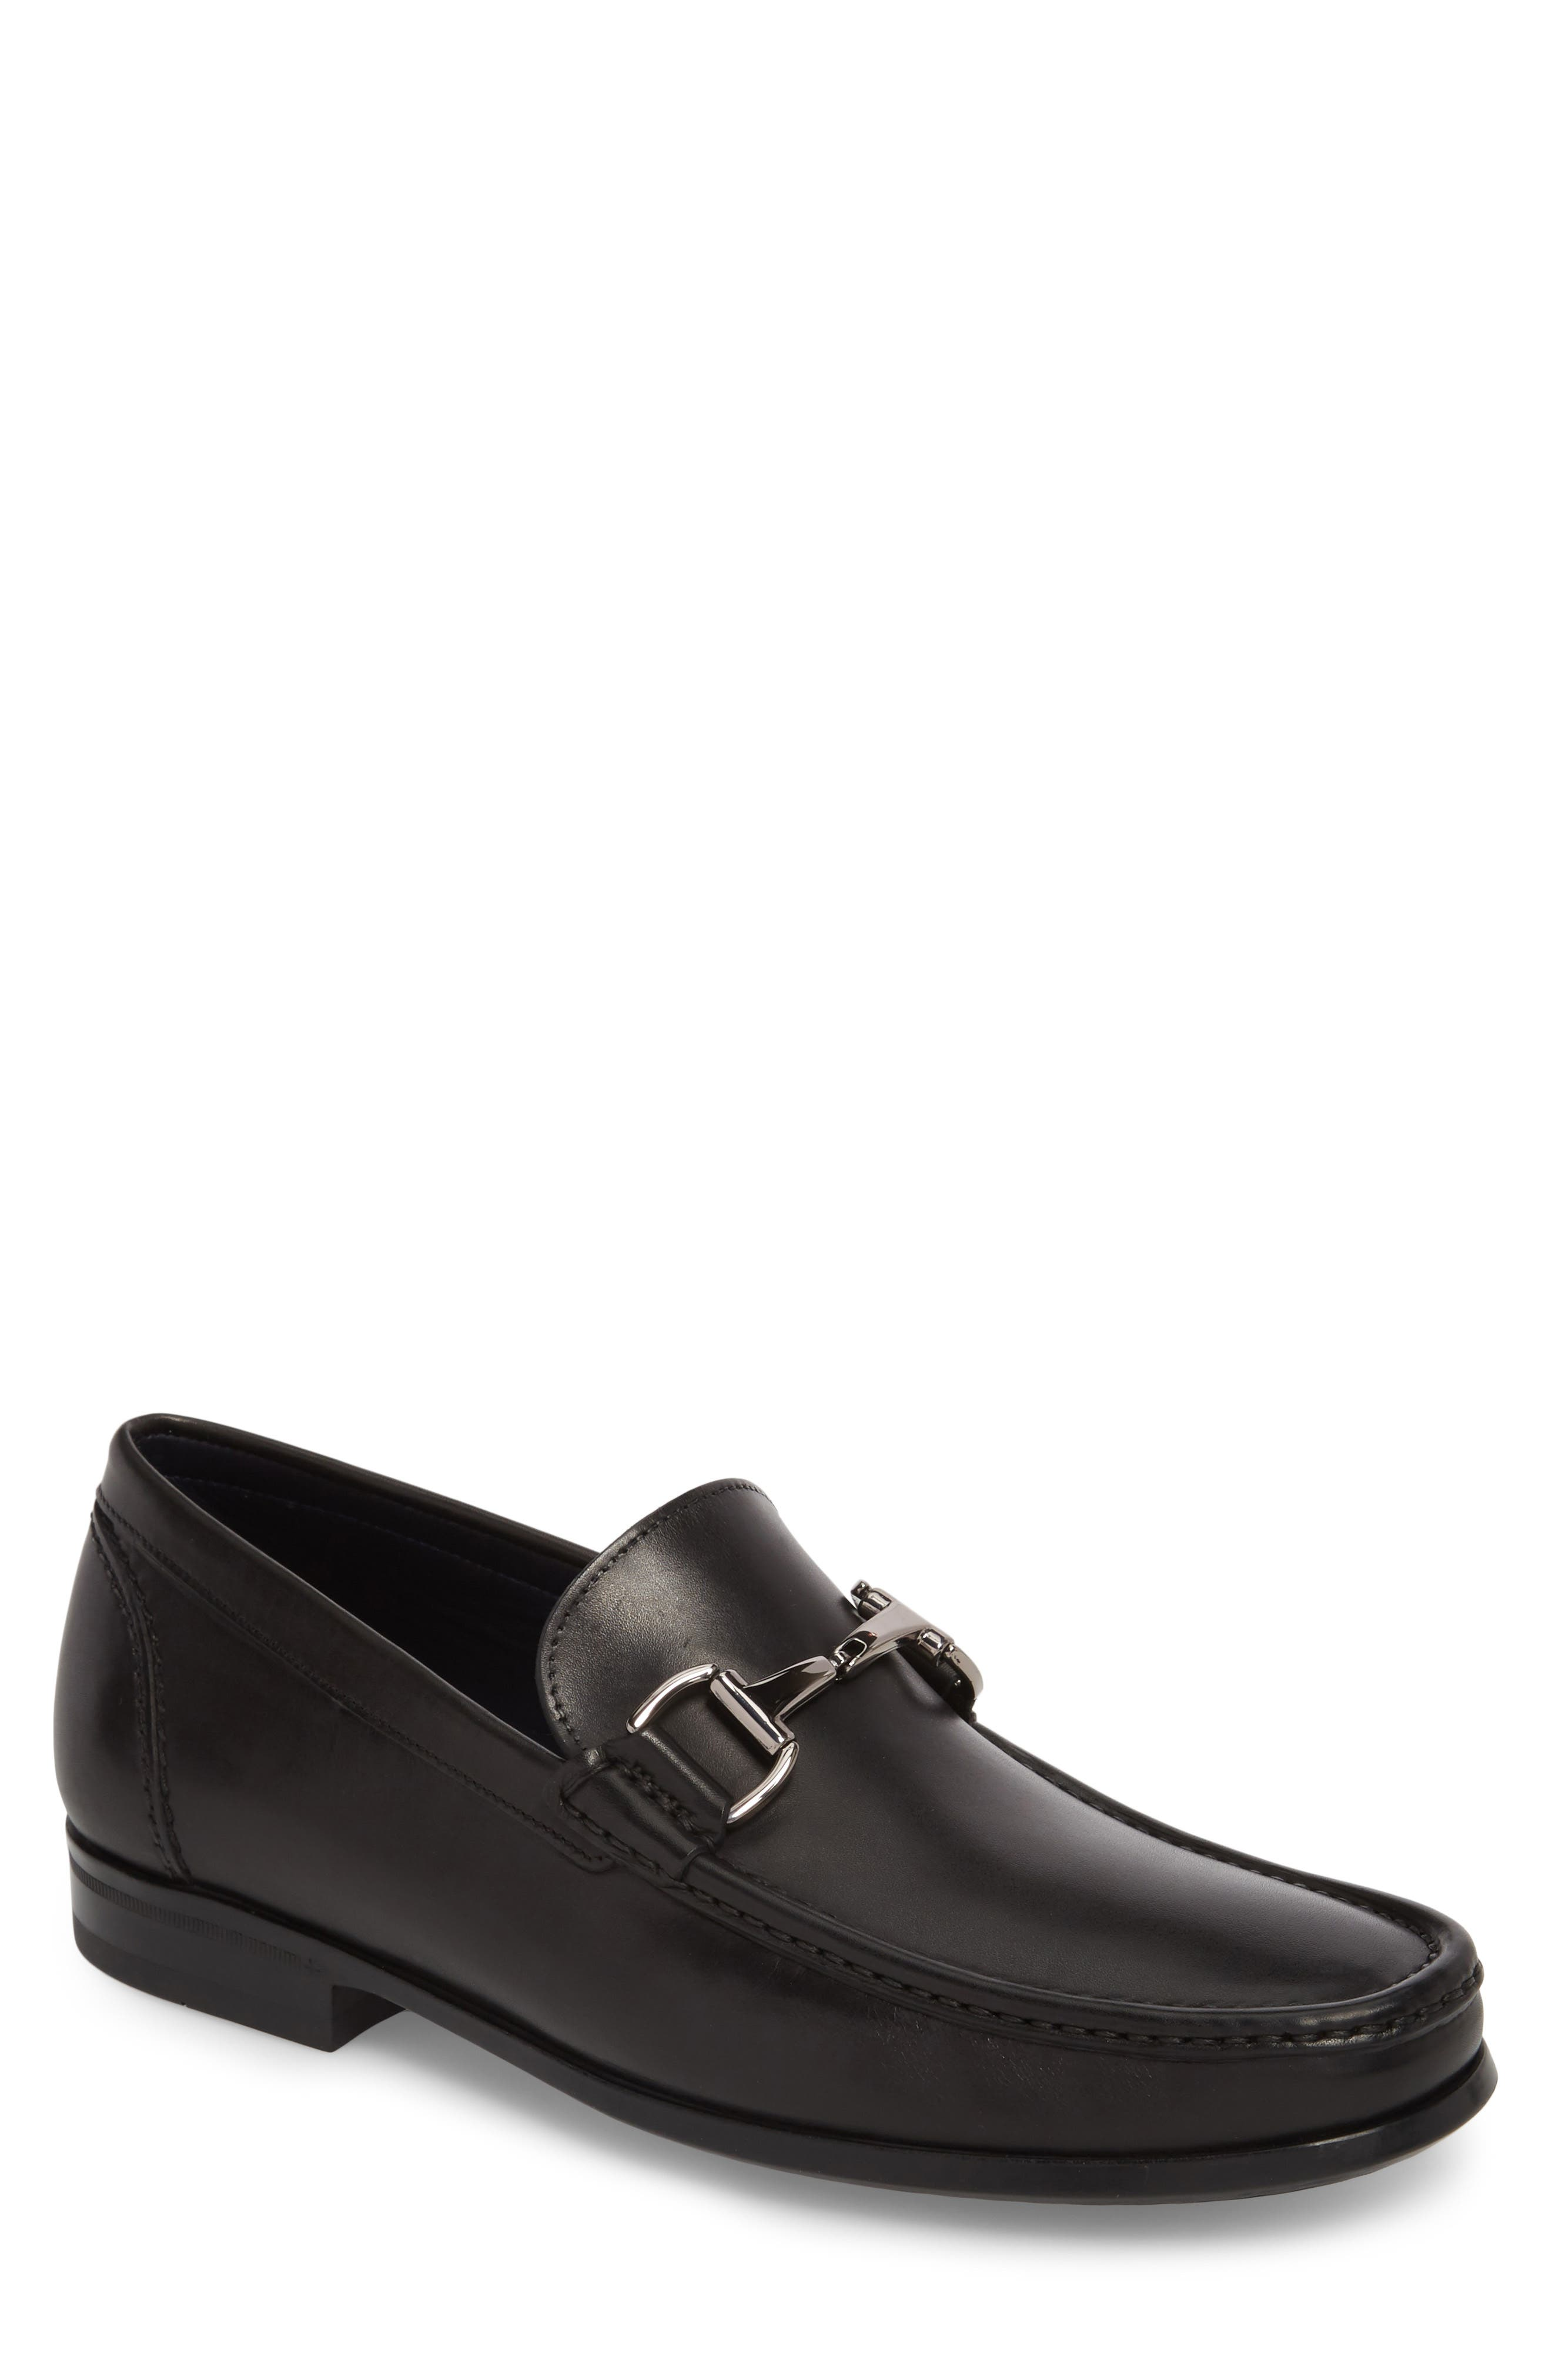 Gio Bit Loafer,                         Main,                         color, Black Leather